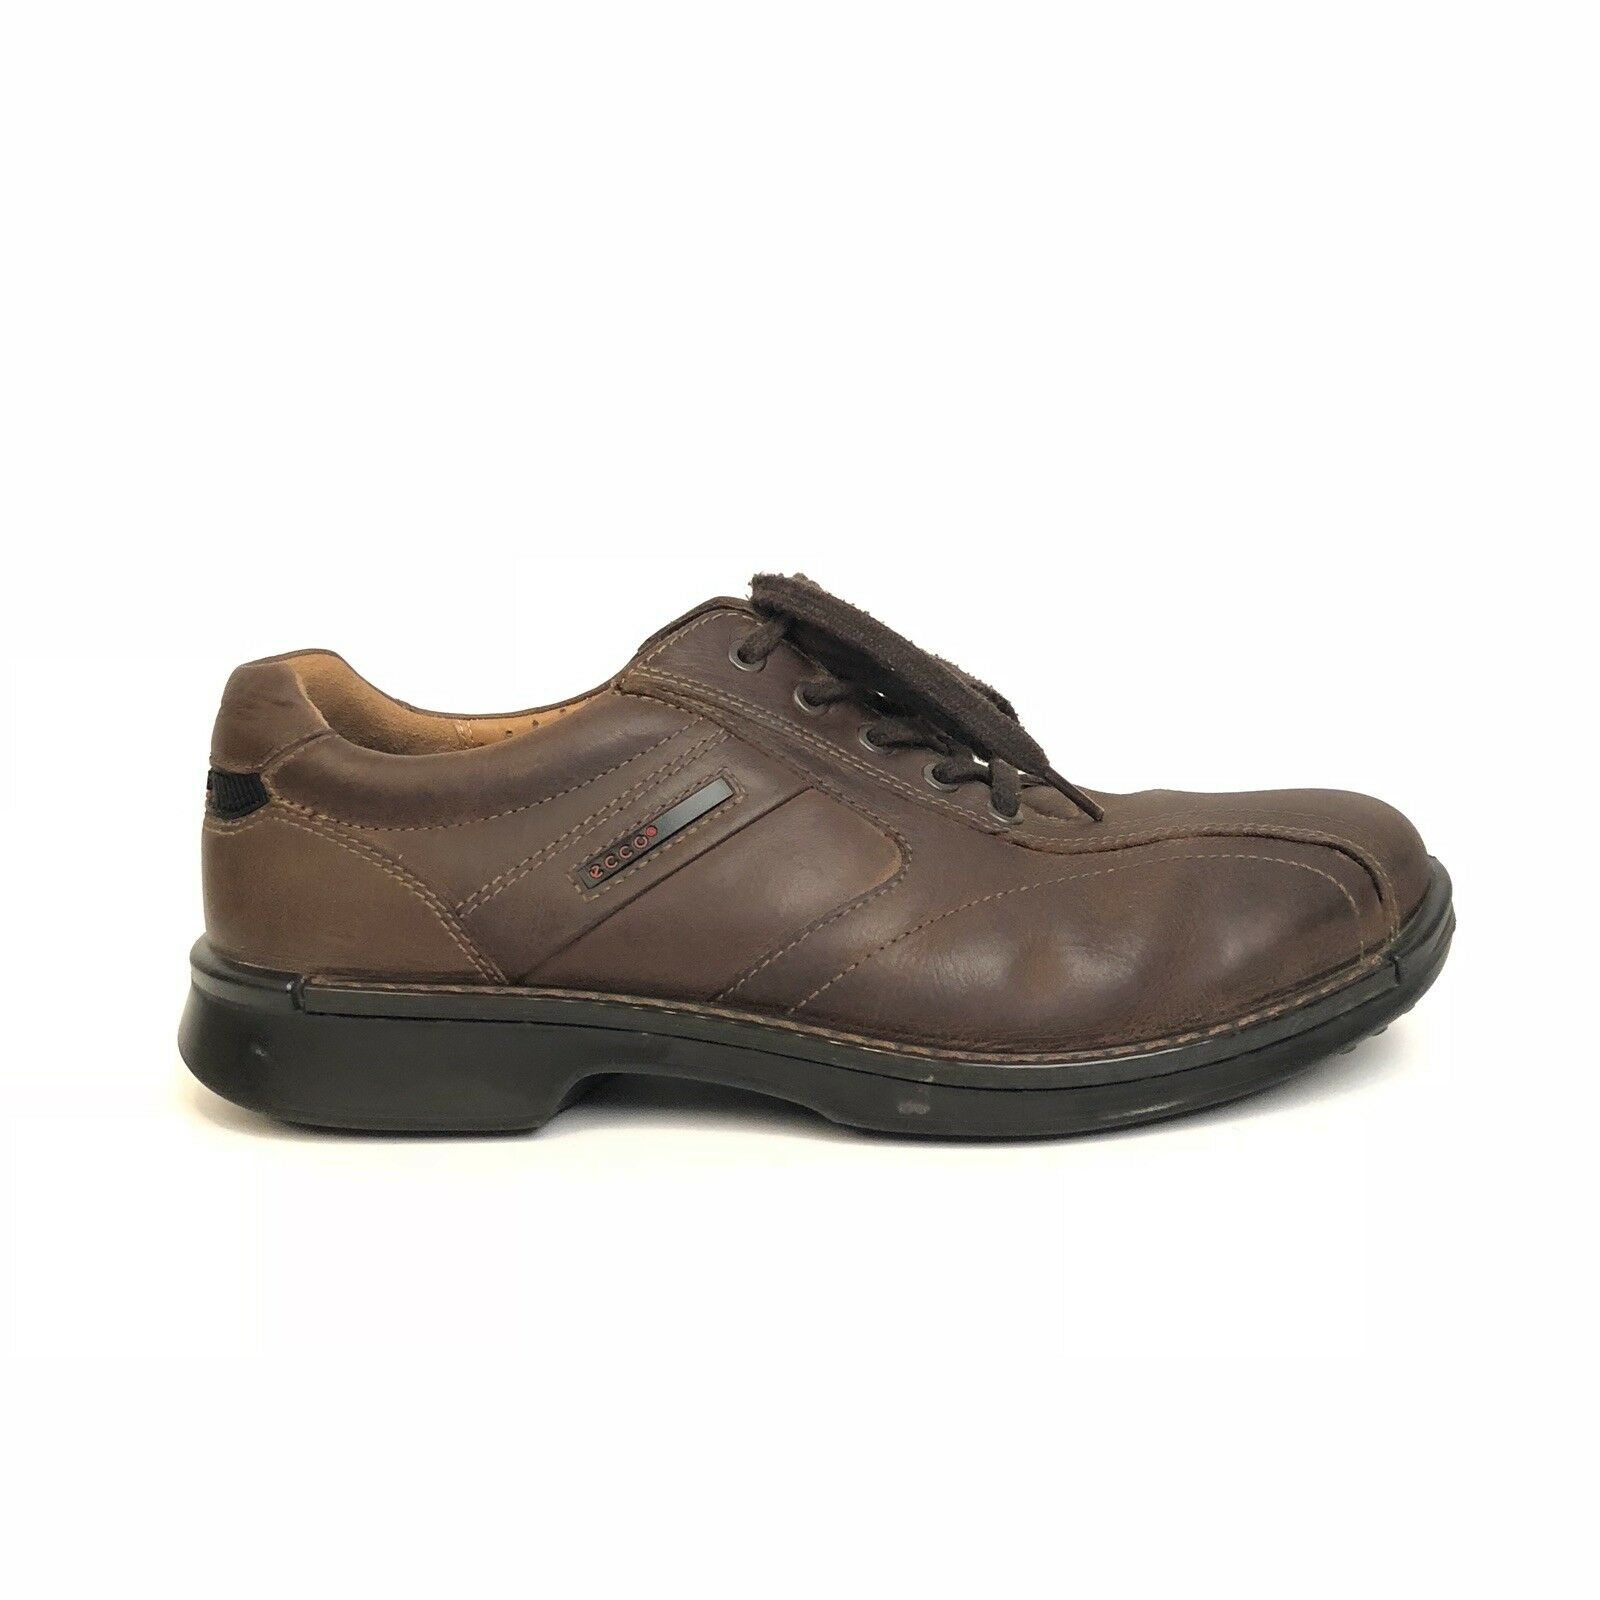 Ecco Uomo Casual Scarpe Taglia 45 Pelle marrone Lace Up Ecco Light Shock Point